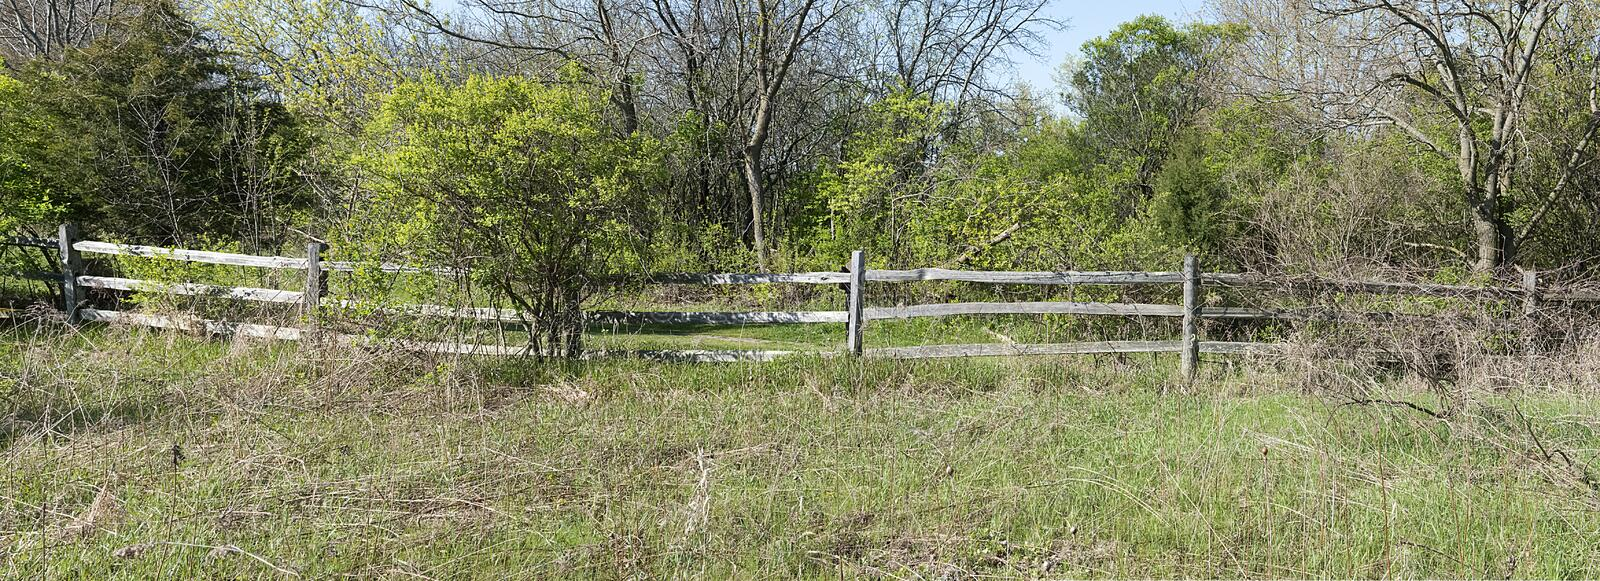 Download Rustic Rural Wood Fence Panorama Panoramic Banner Royalty Free Stock Images - Image: 24252099